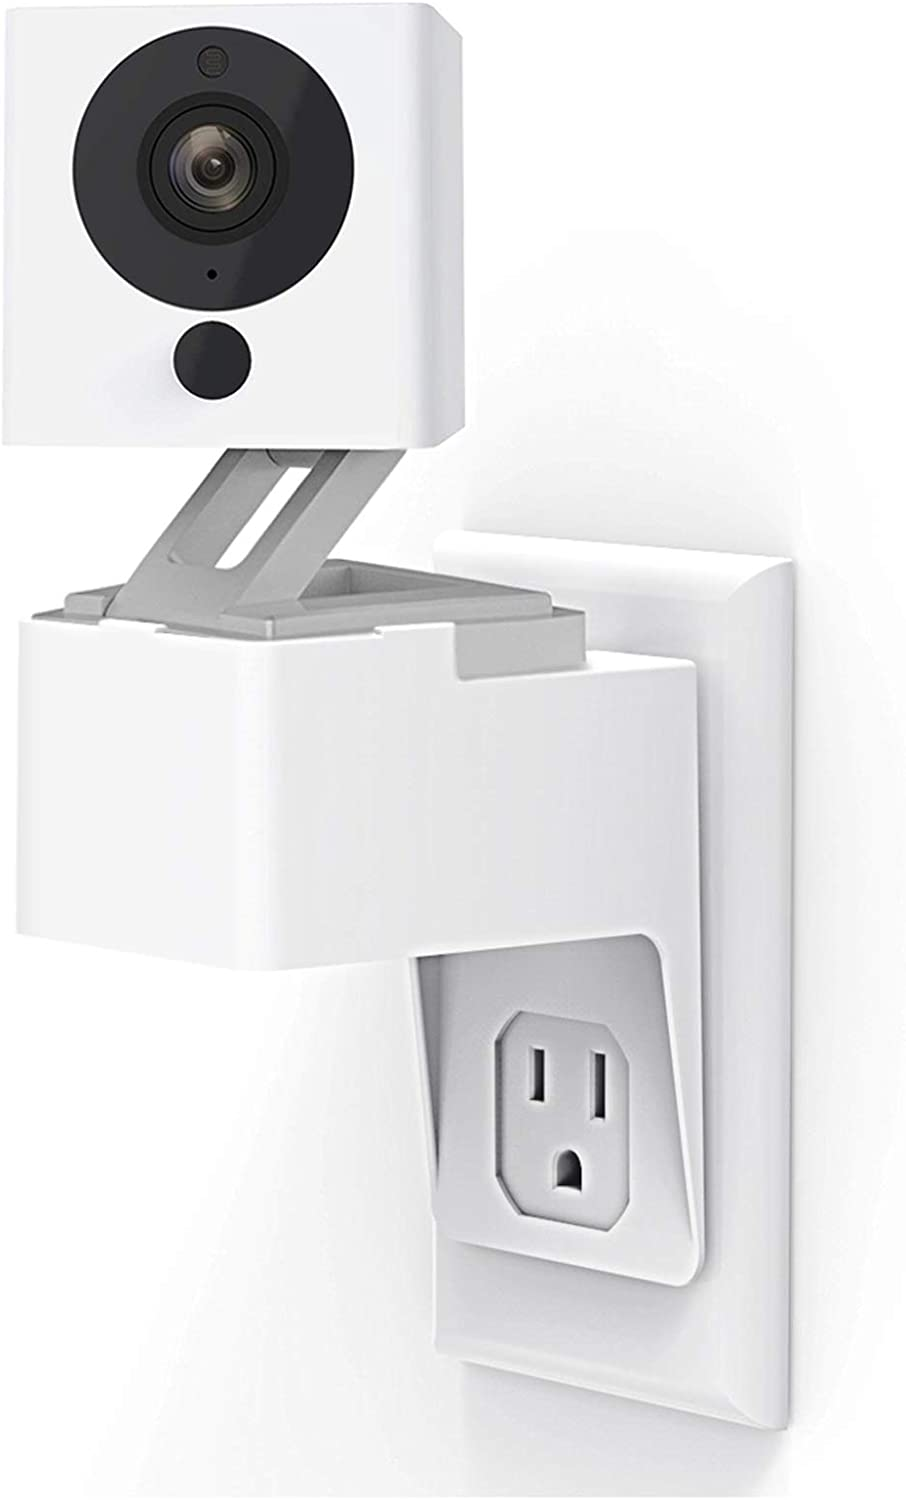 Wyze Cam Outlet Wall Mount, Upgraded 360 Degree Swivel AC Outlet Wall Plug Mount Stand Holder Bracket Without Messy Wires or Wall Damage (1 Pack)